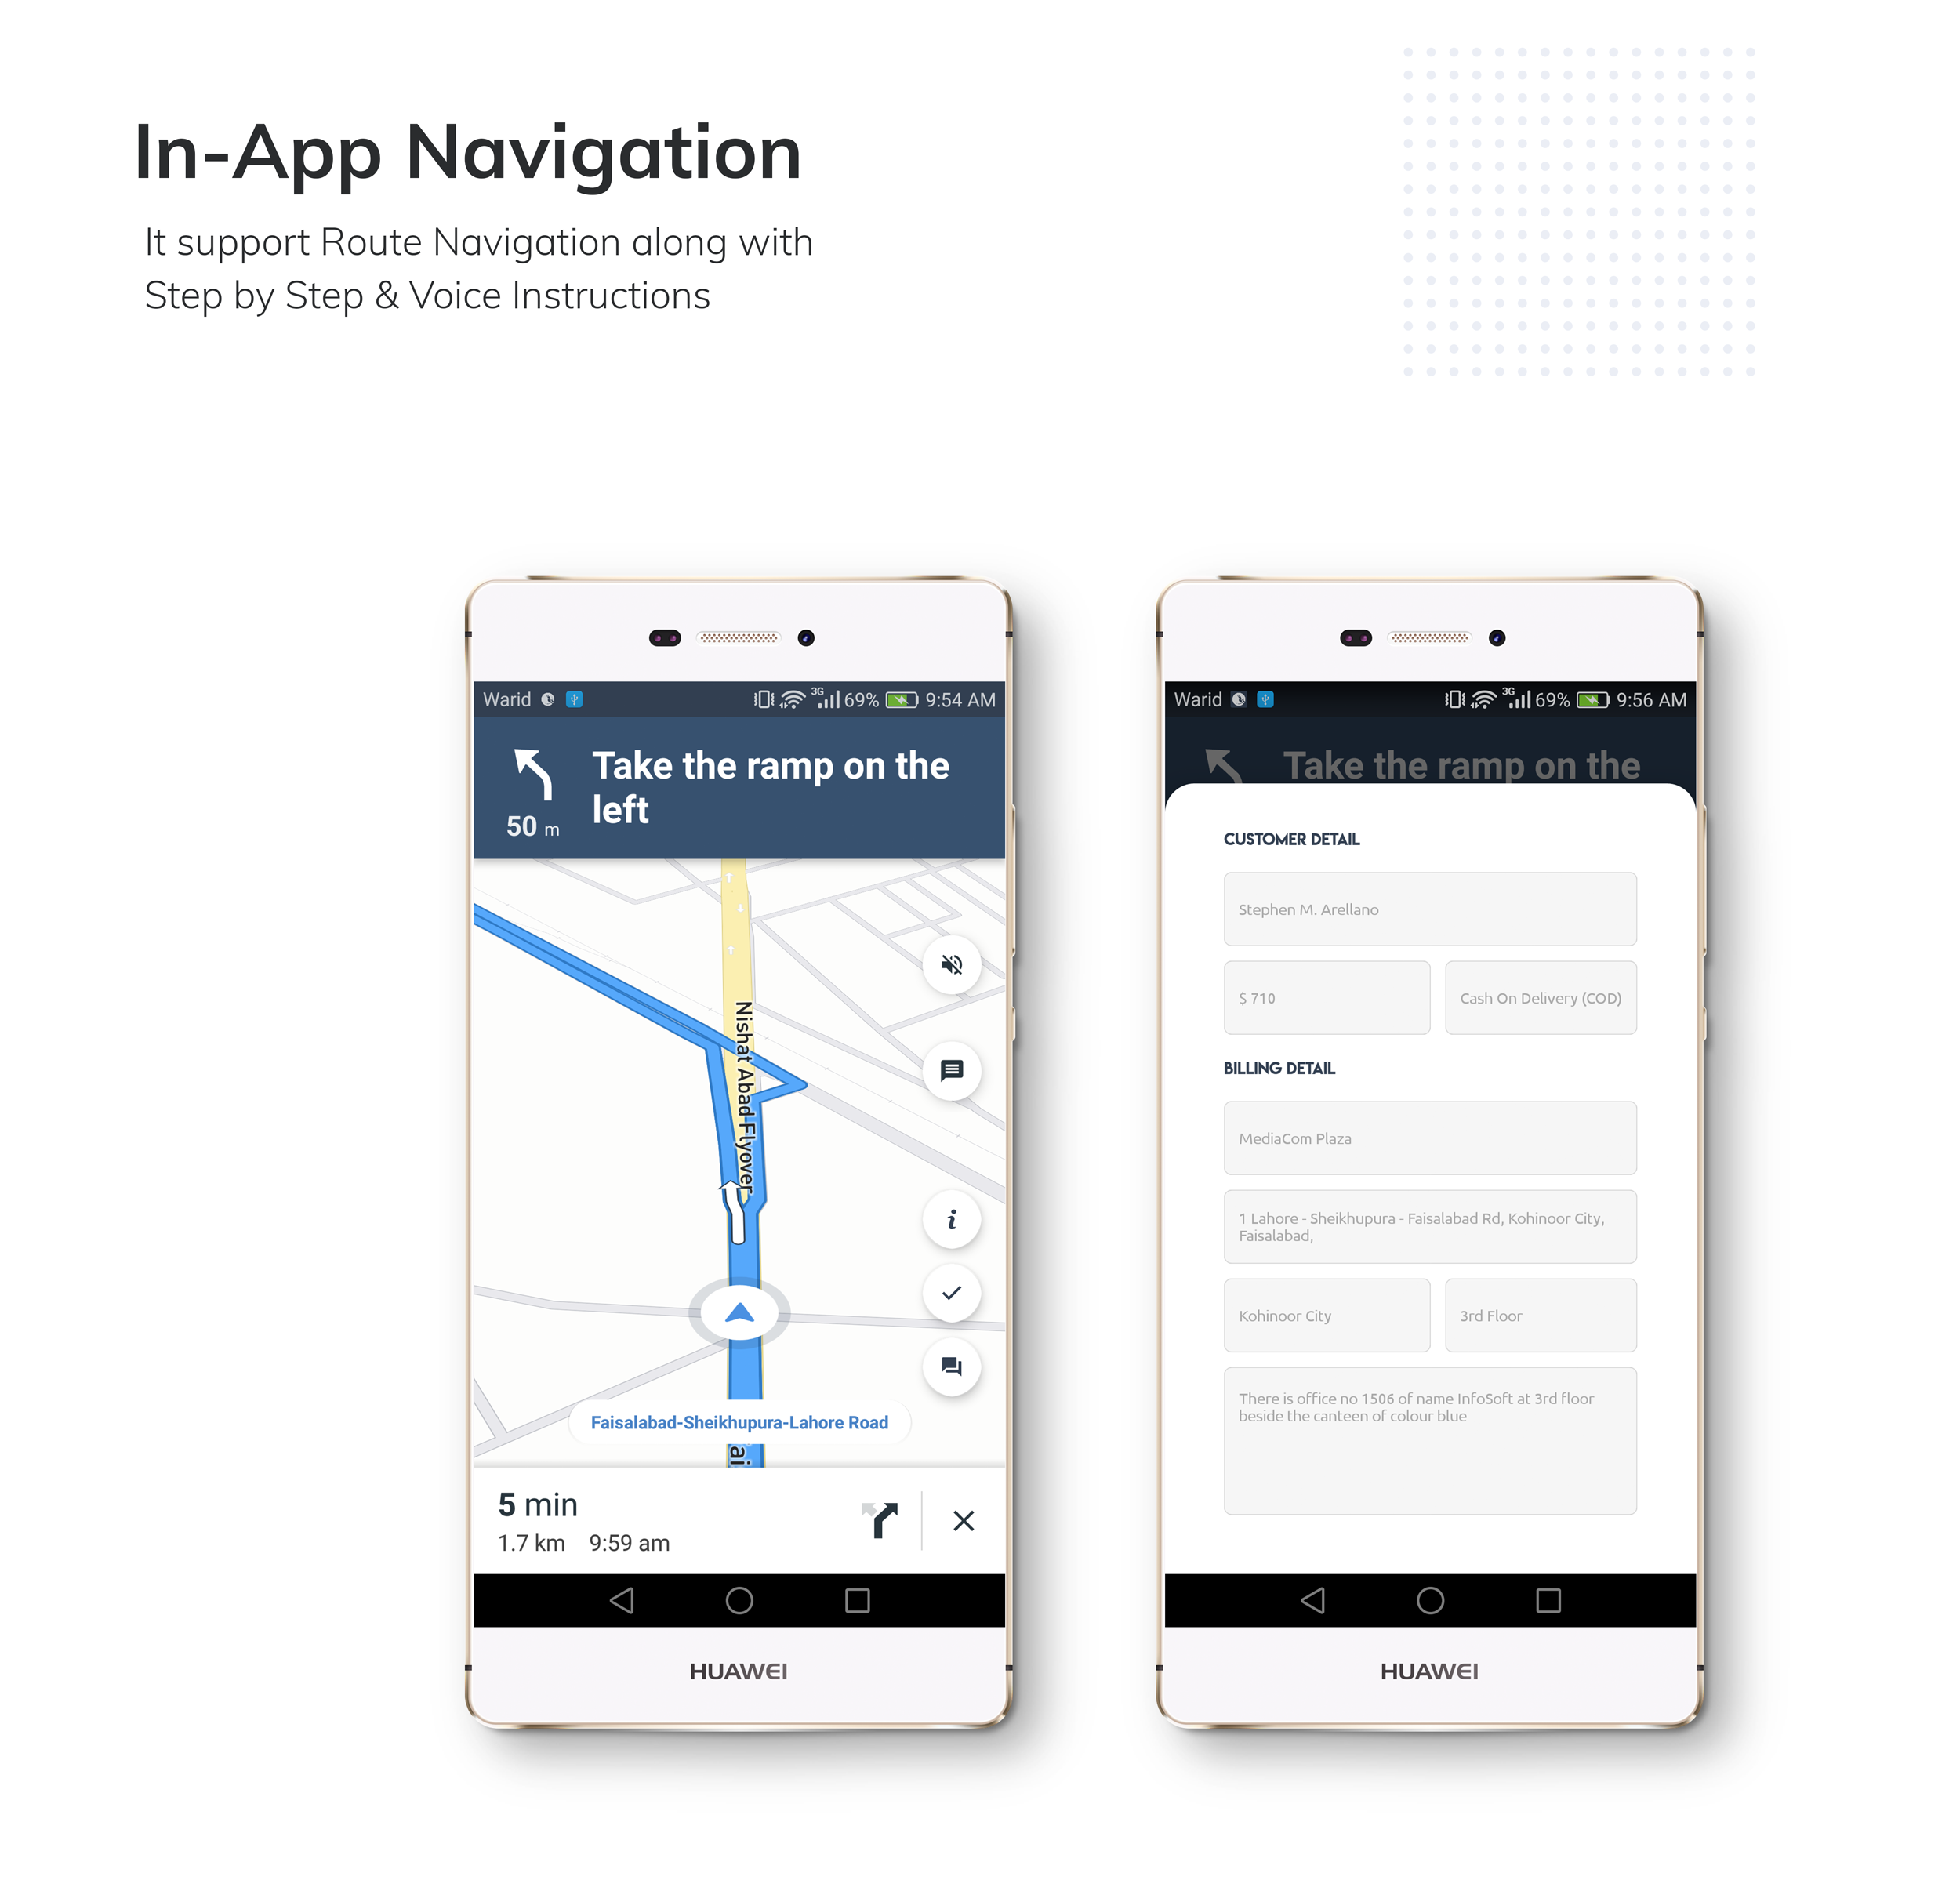 Restaurant Delivery Boy Rider App with Navigation - 5